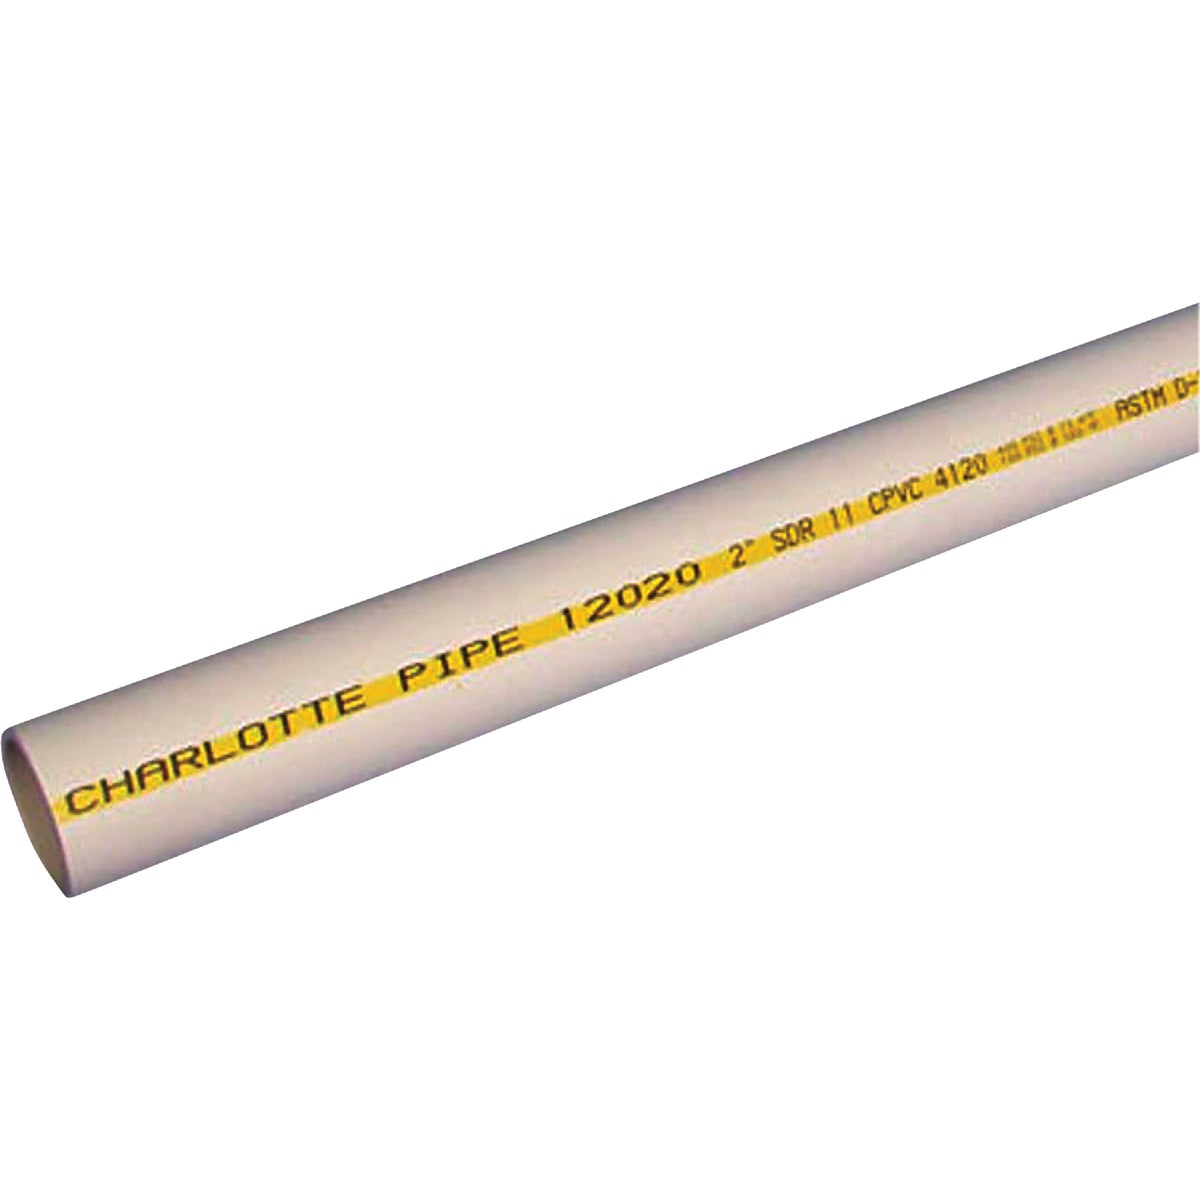 """3/4""""X10' CPVC-FLOWG PIPE - CTS120070600 by Charlotte Pipe"""